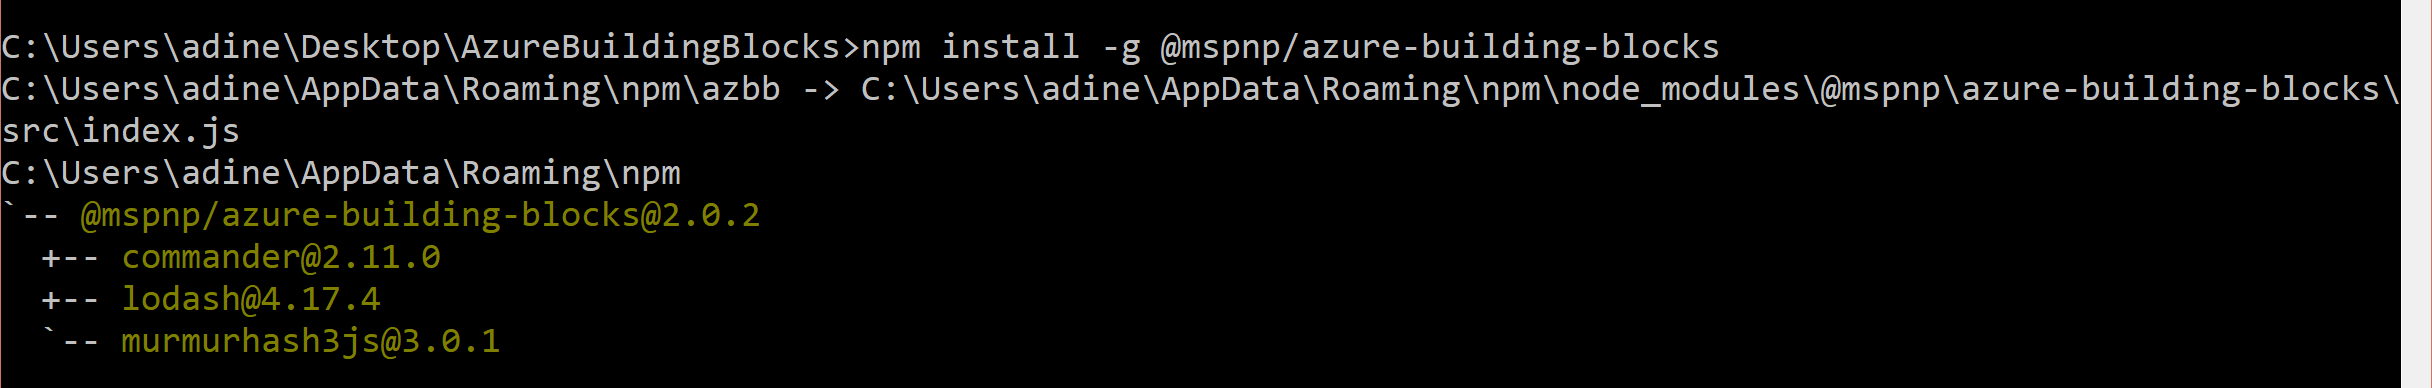 Azure Building Blocks - NPM Package